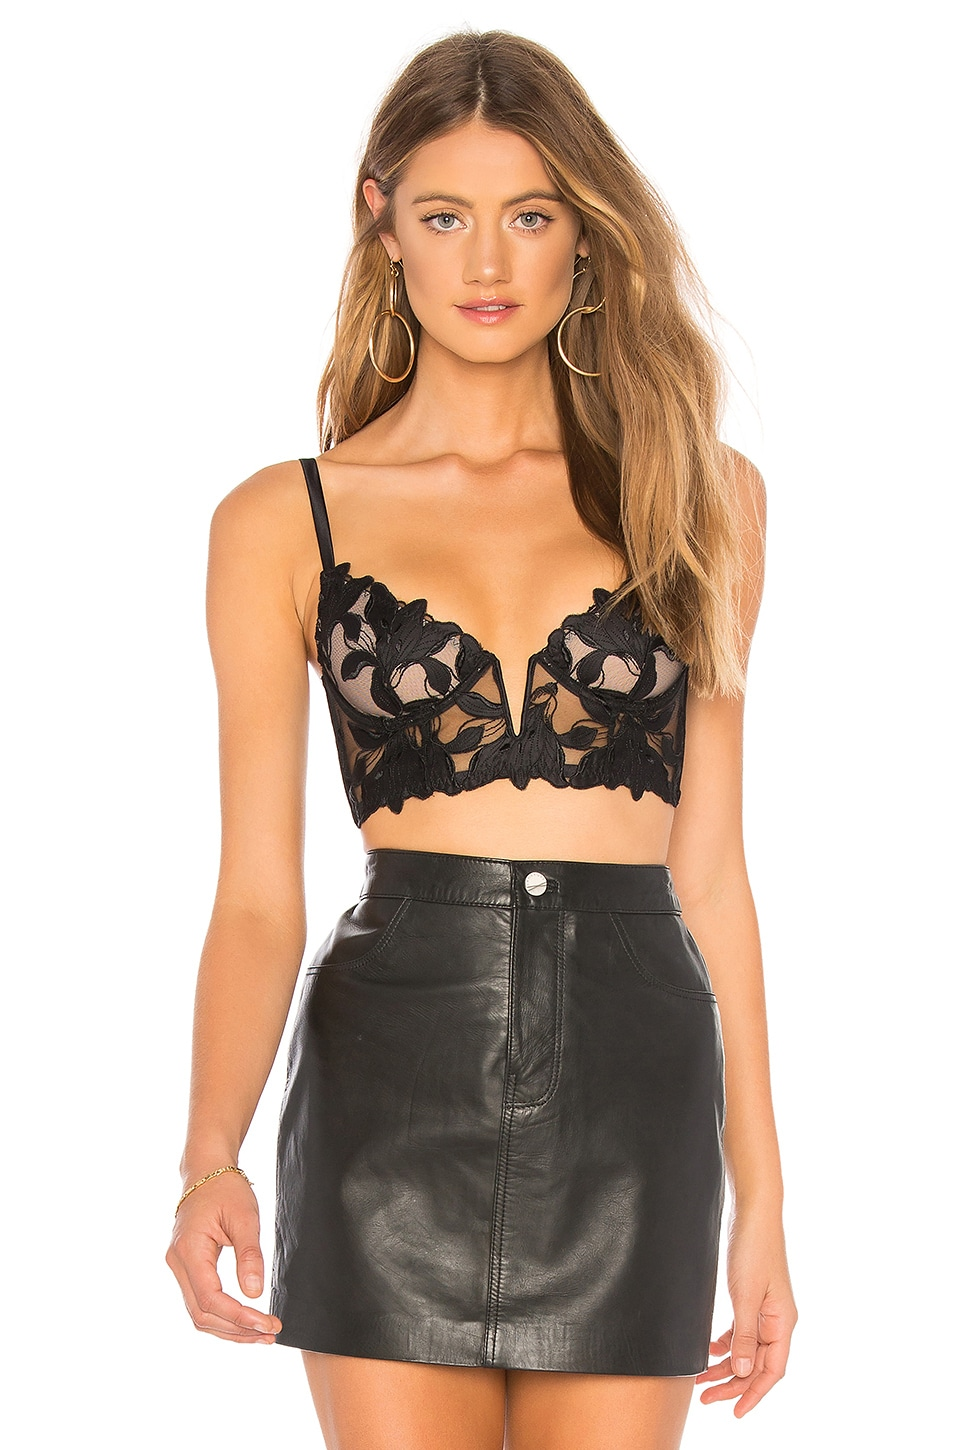 fleur du mal Lily Lace Long Line Demi Bra in Black